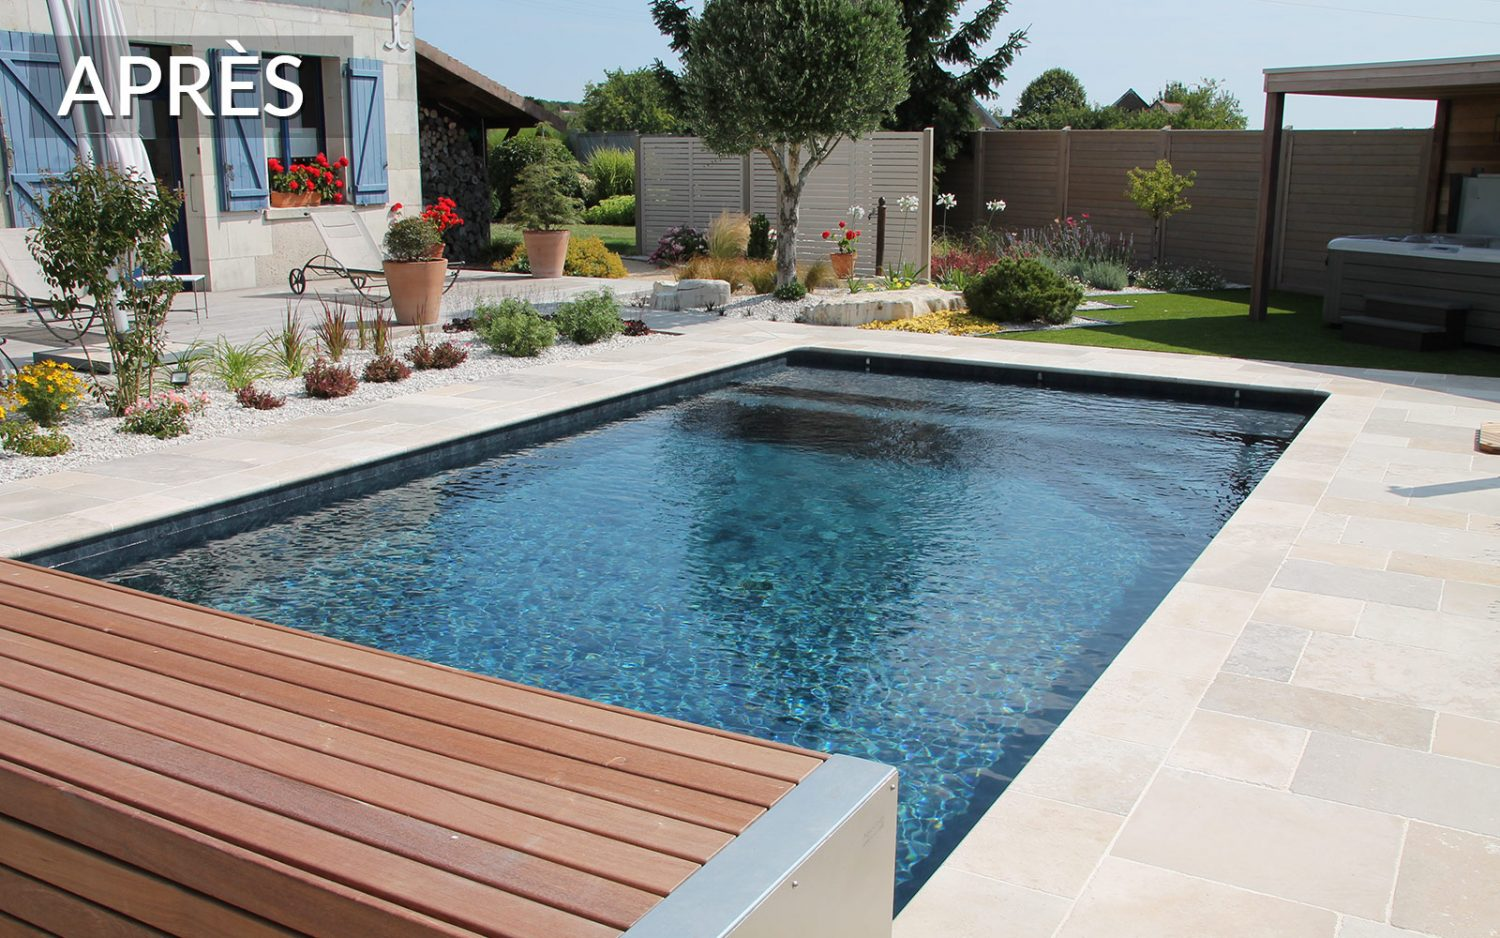 ADH-PAYSAGES-renovation-piscines-ther3